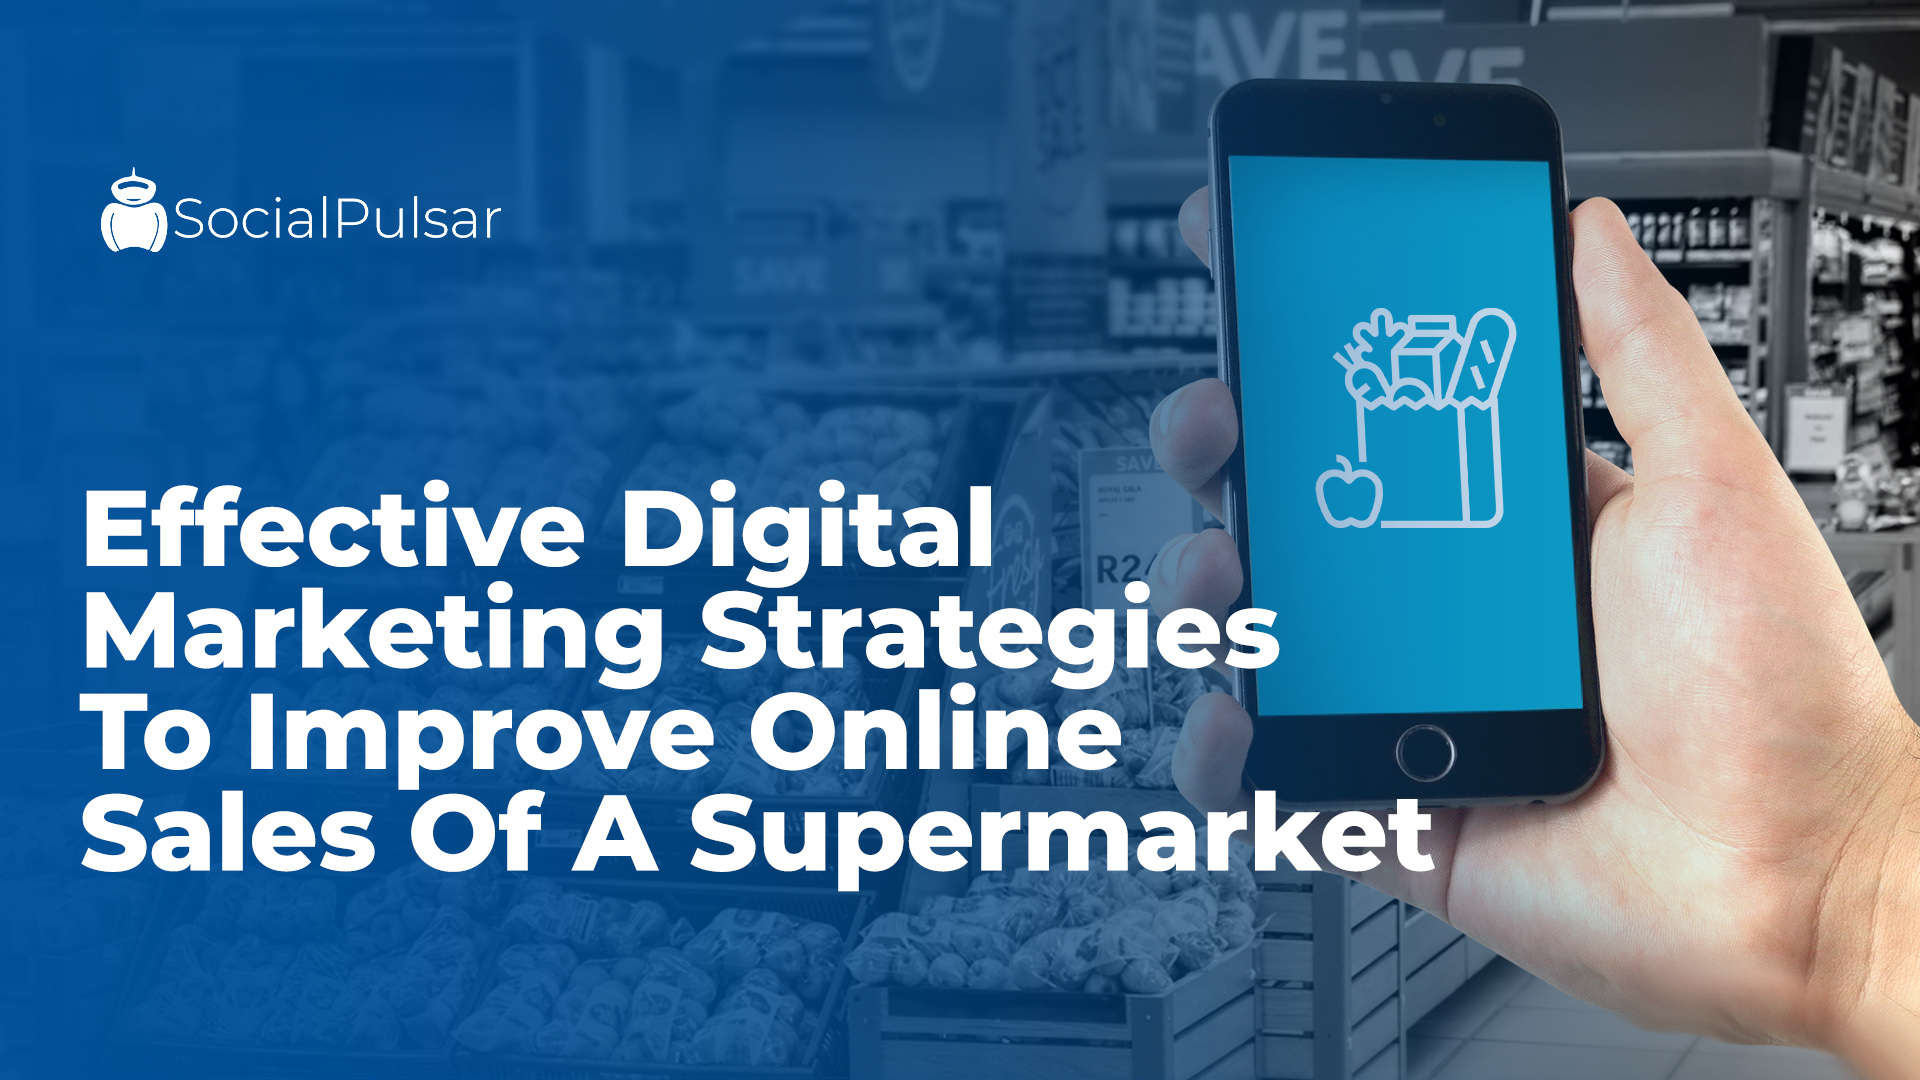 Effective Digital Marketing Strategies To Improve Online Sales Of A Supermarket